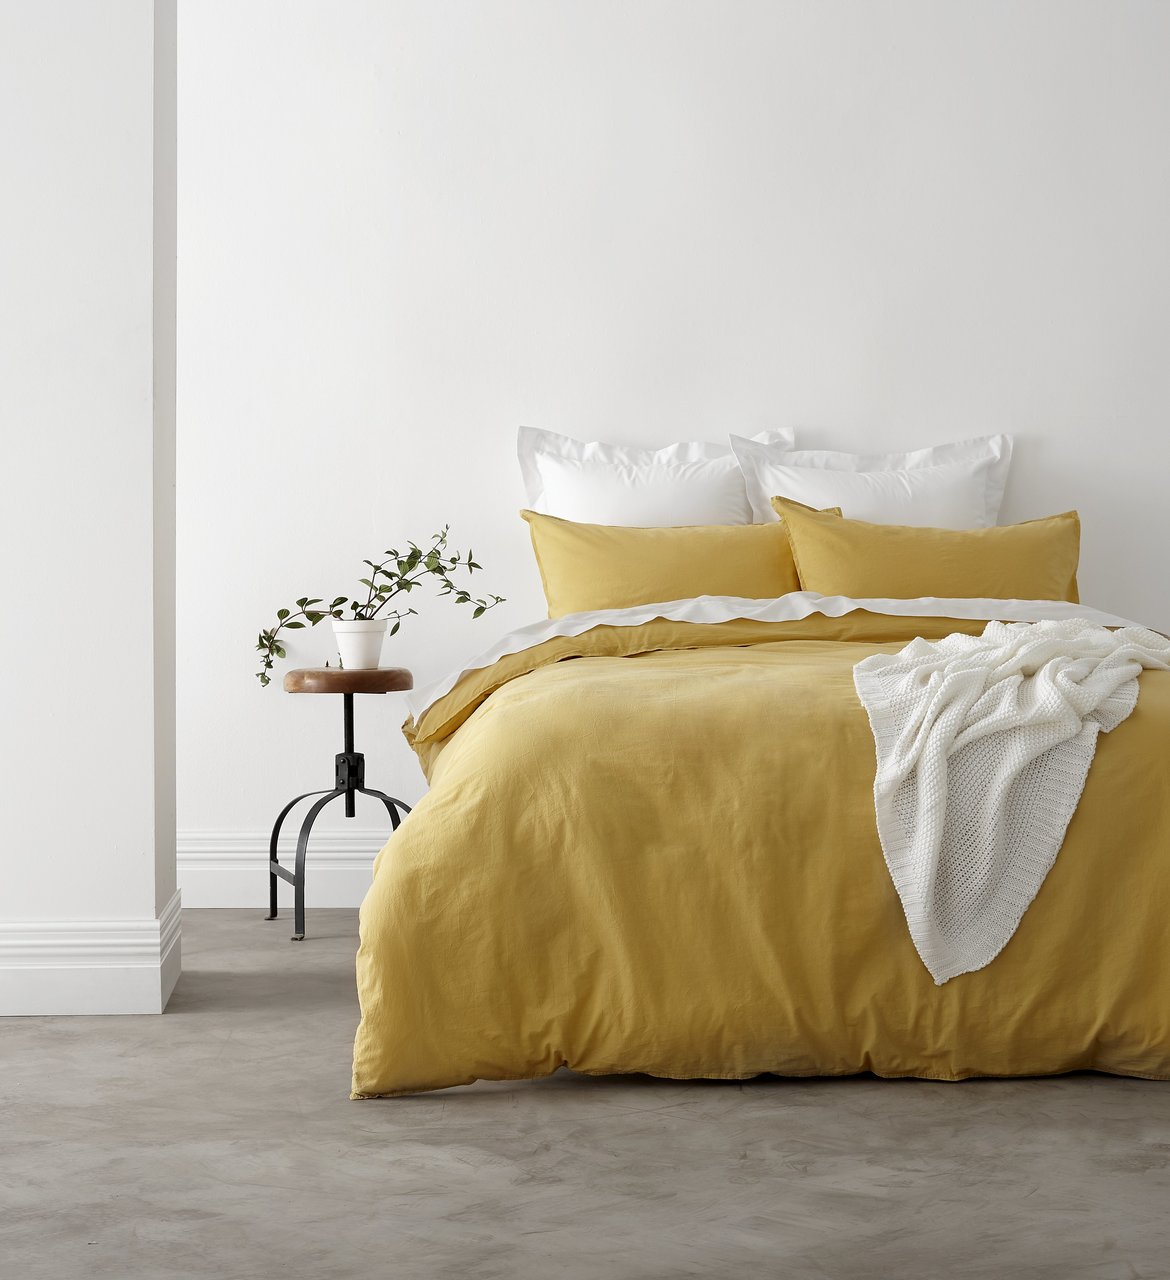 In 2 Linen Vintage Washed King Bed Quilt Cover Set | Mustard ... : yellow quilt cover - Adamdwight.com